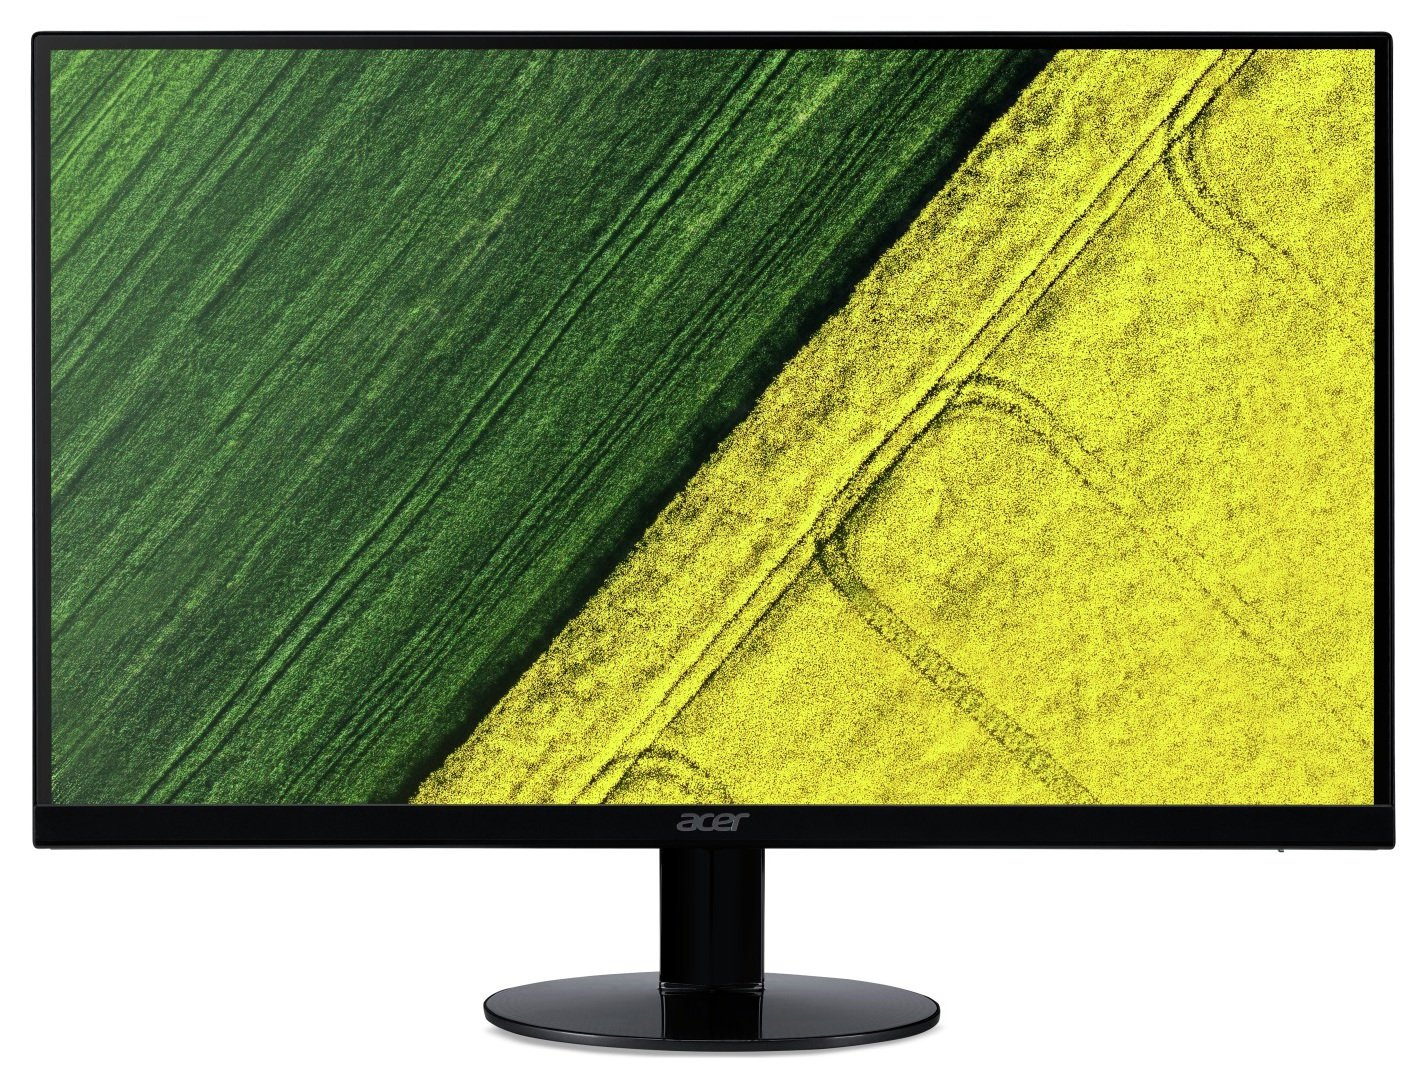 Image of Acer SA22 22 Inch LED Zeroframe Monitor - Black